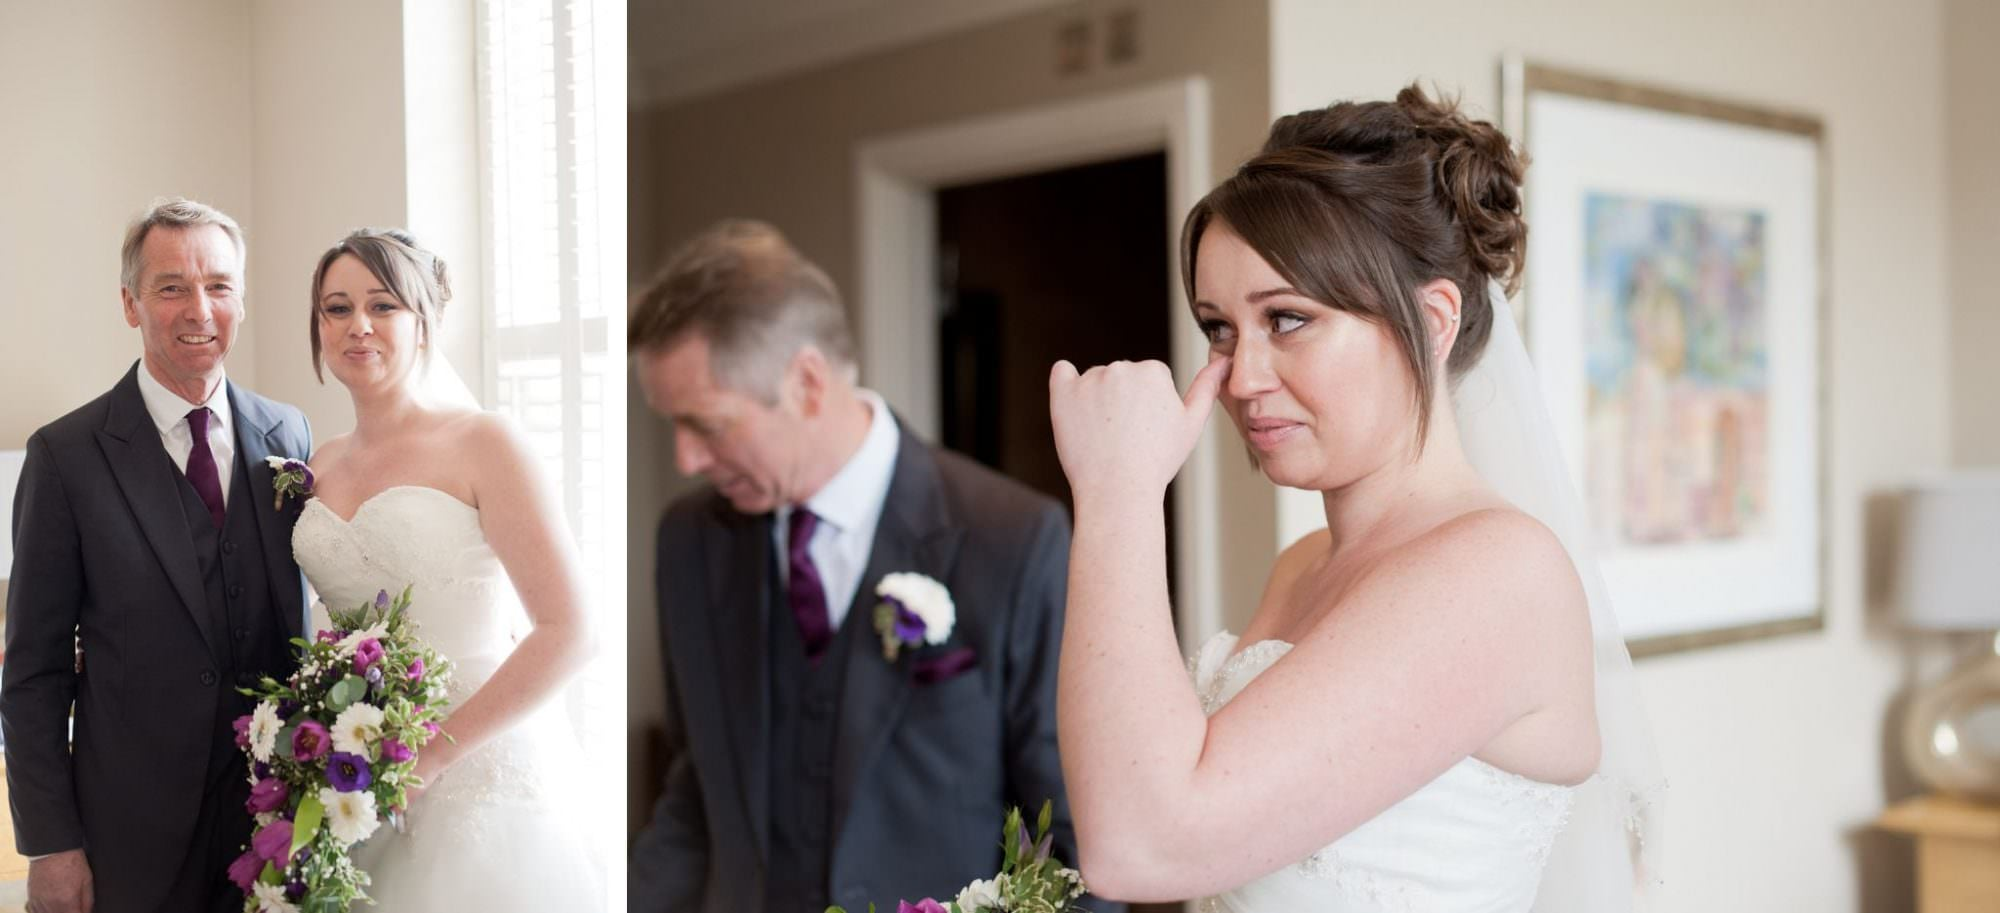 Bride and Father at Kings Arms Hotel Wedding